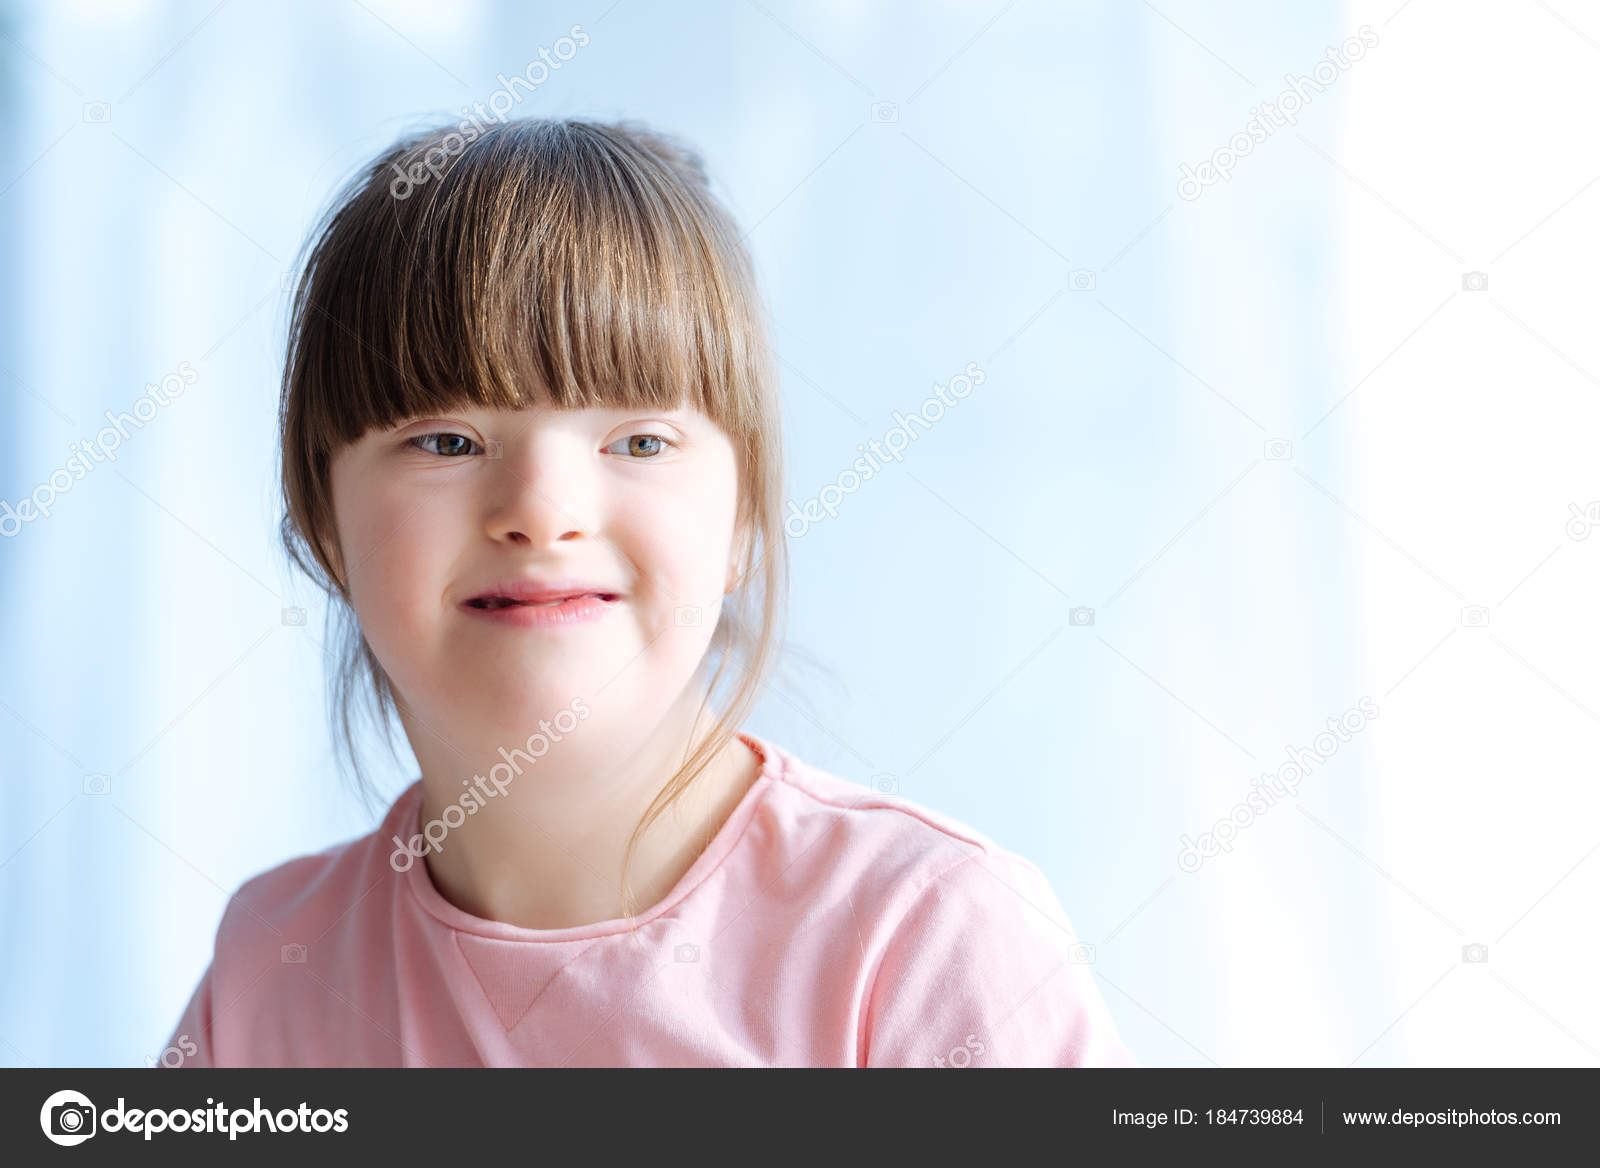 portrait cute kid syndrome — stock photo © allaserebrina #184739884